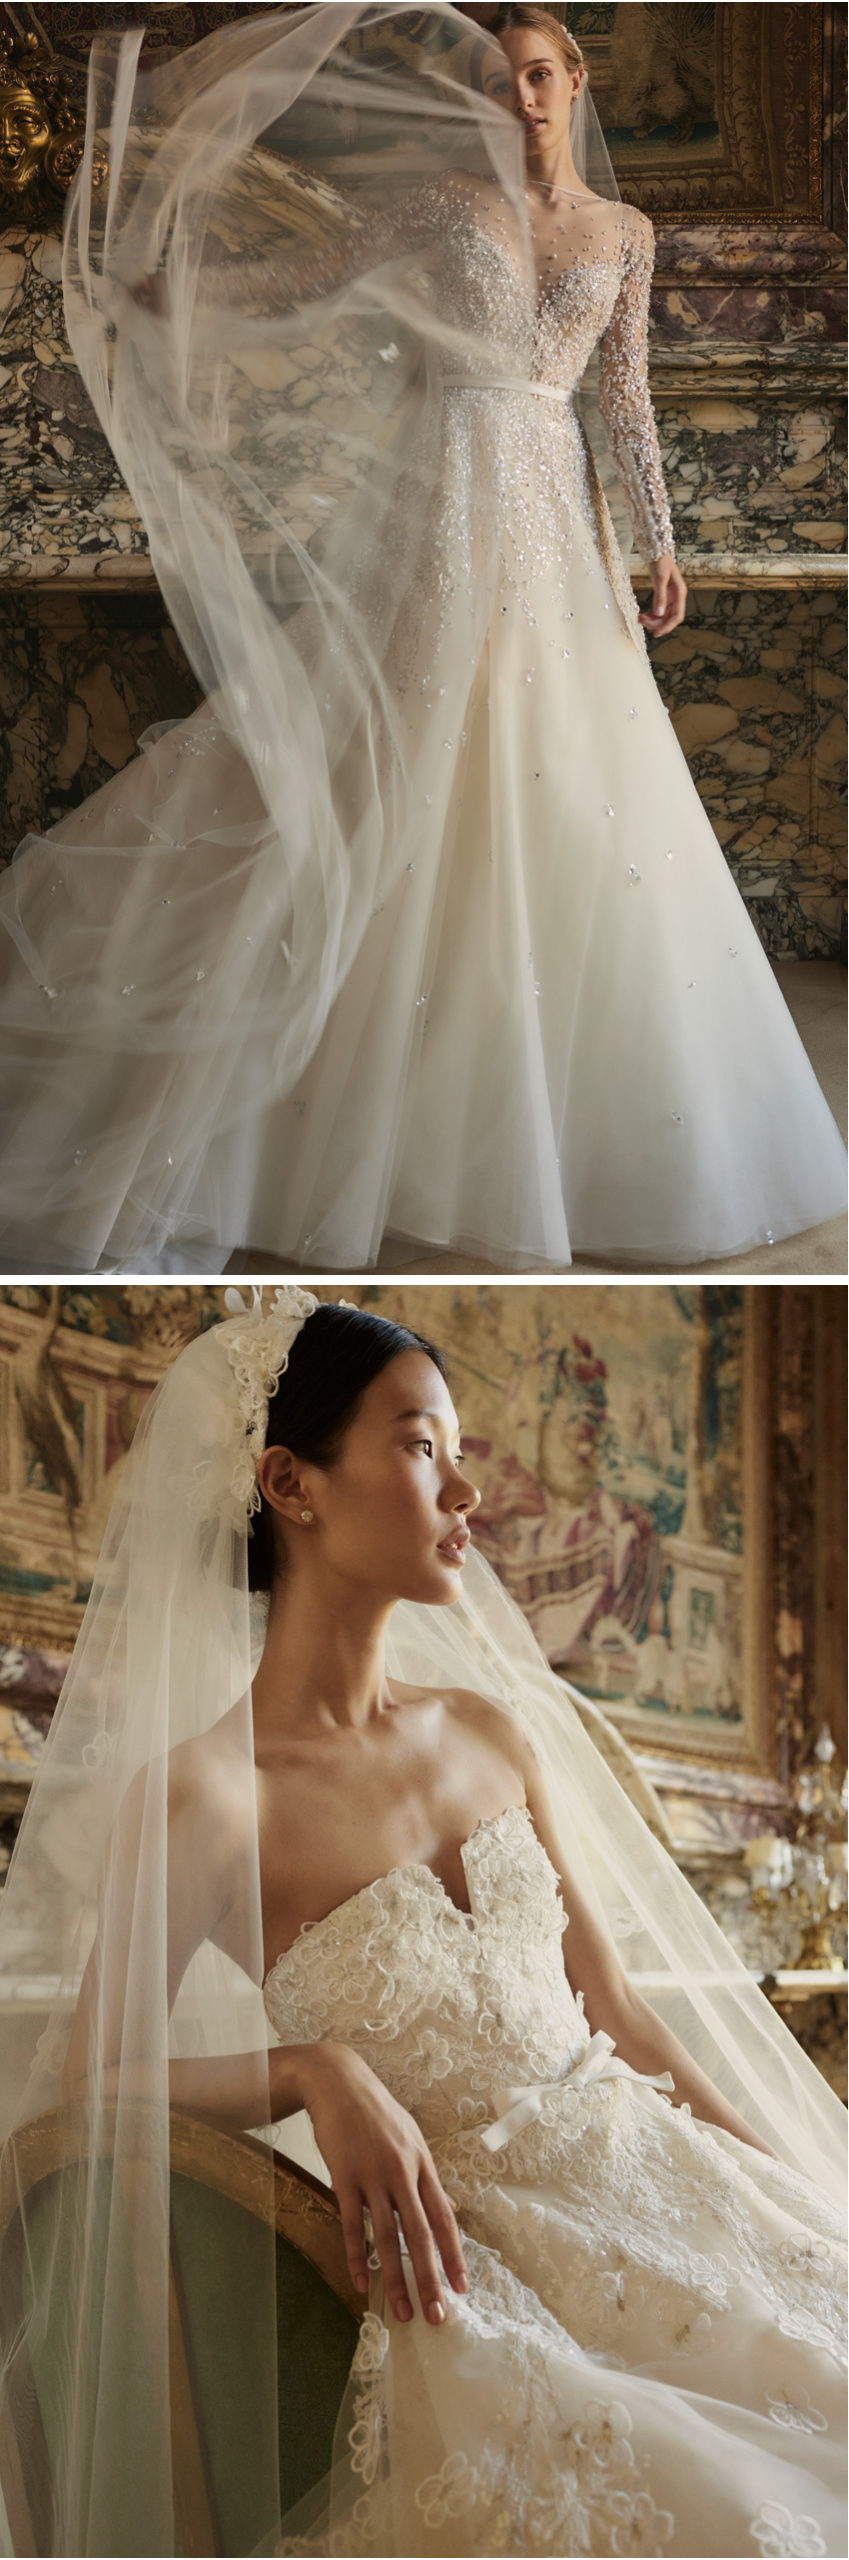 Elie Saab Fall 2022 Bridal Collection Portrait in Motion includes 11 wedding gowns made with the finest fabrics